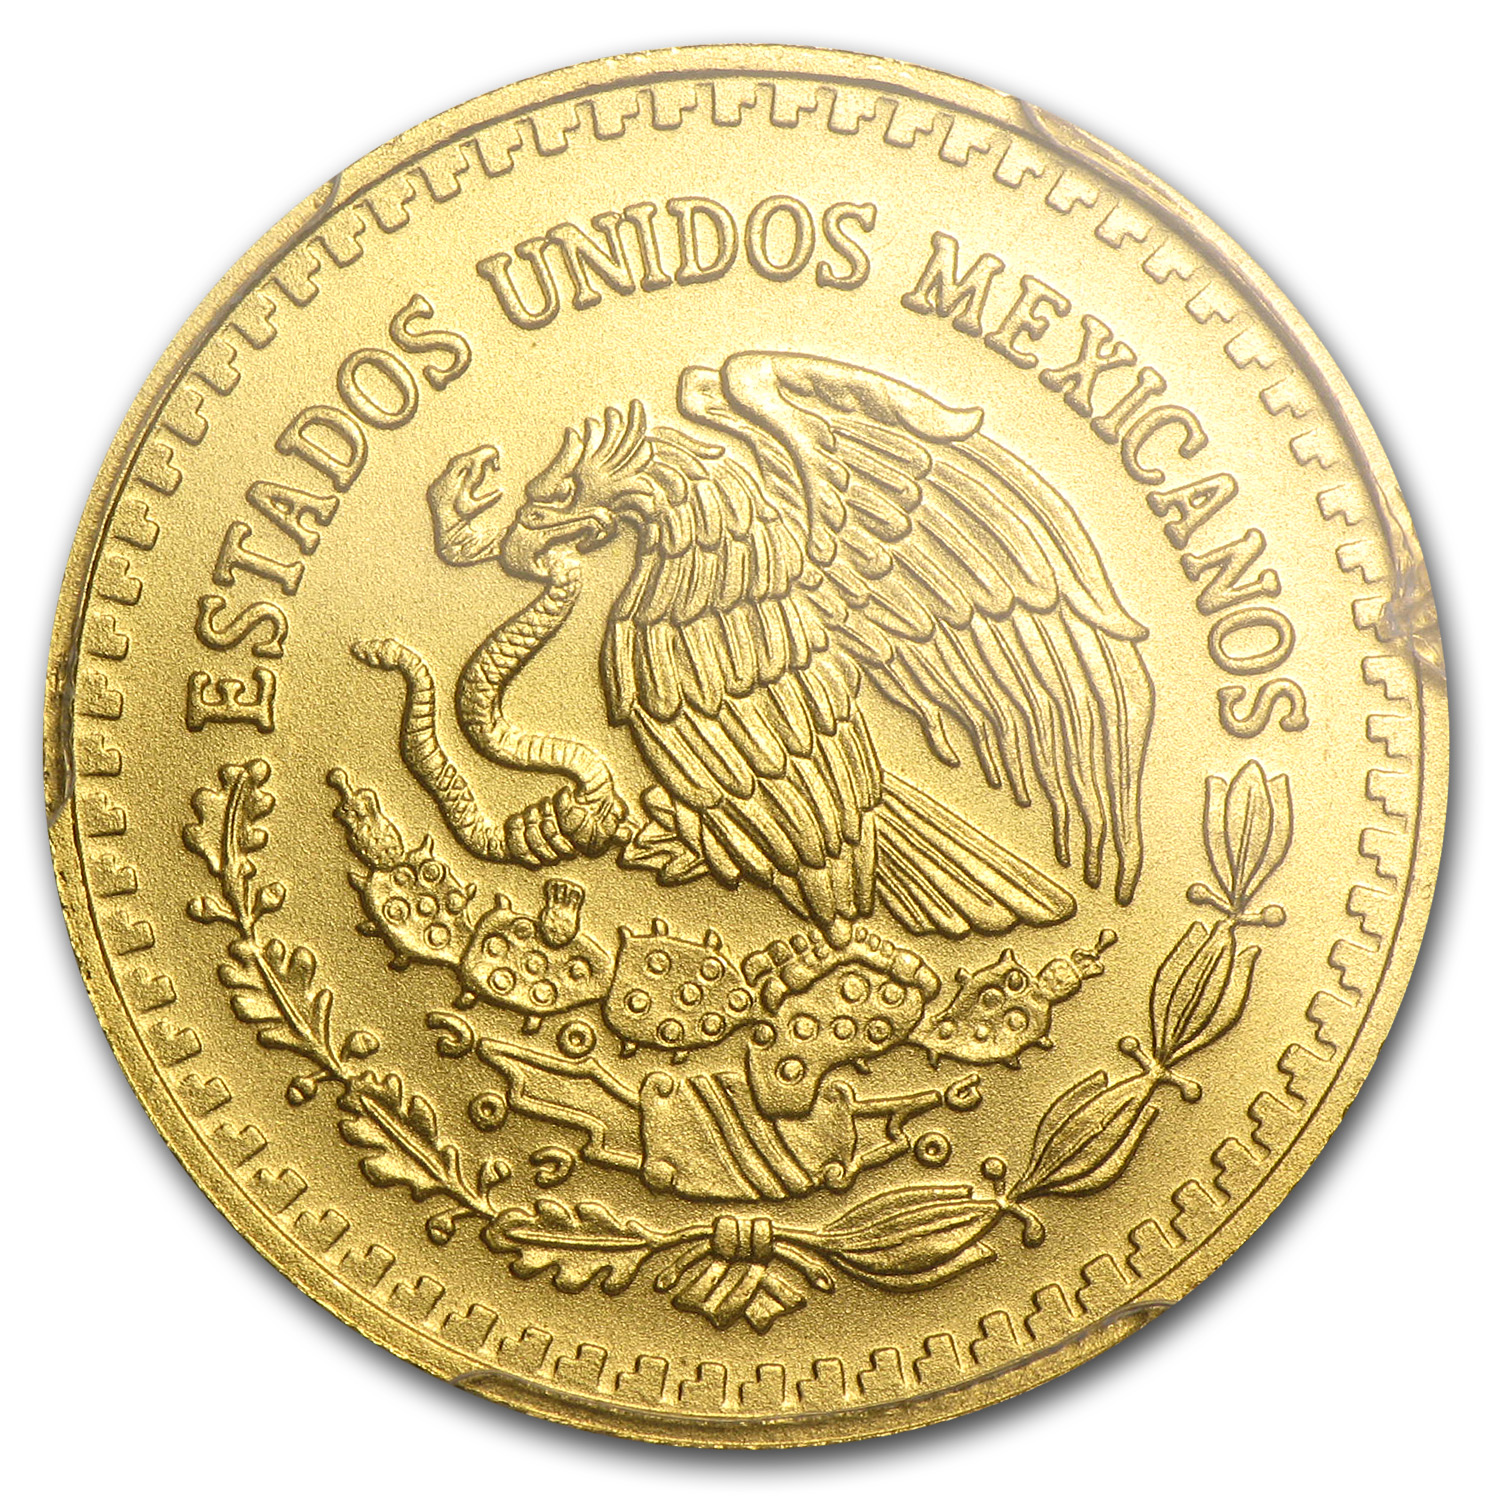 2014 Mexico 1/4 oz Gold Libertad MS-70 PCGS